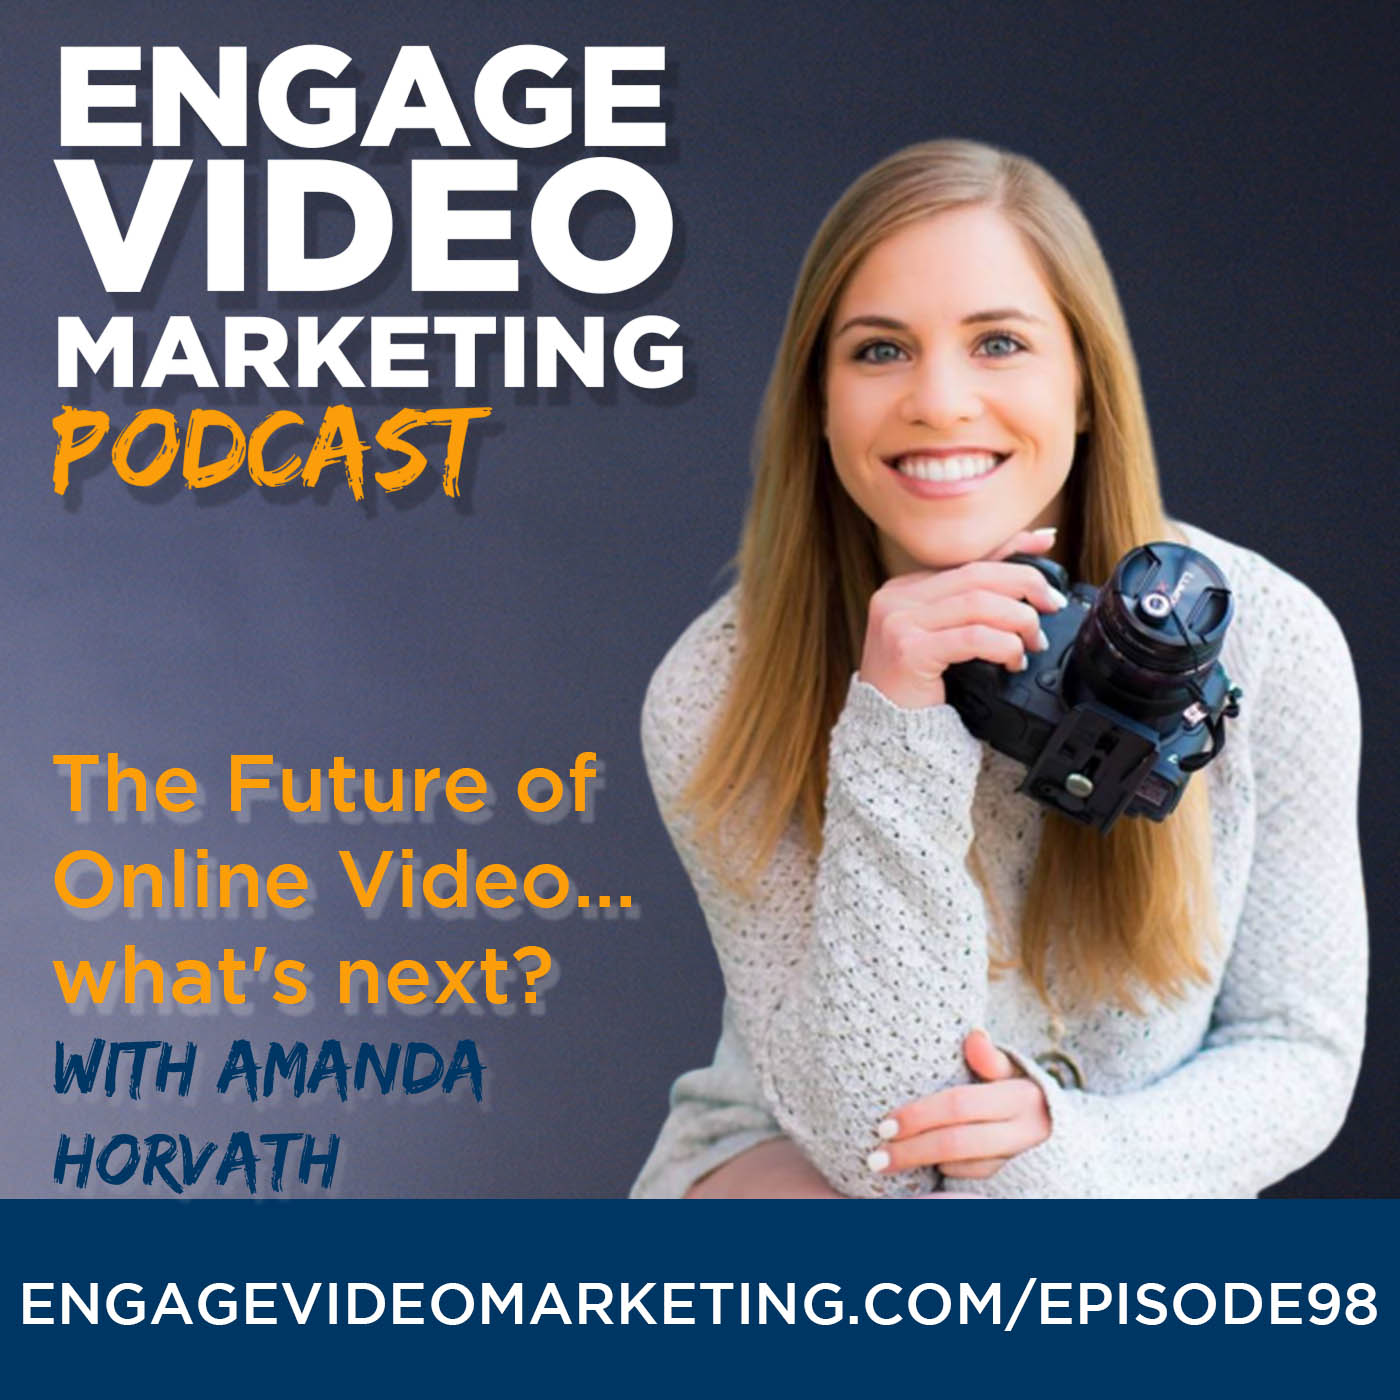 The Future of Online Video… what's next? (with Amanda Horvath)